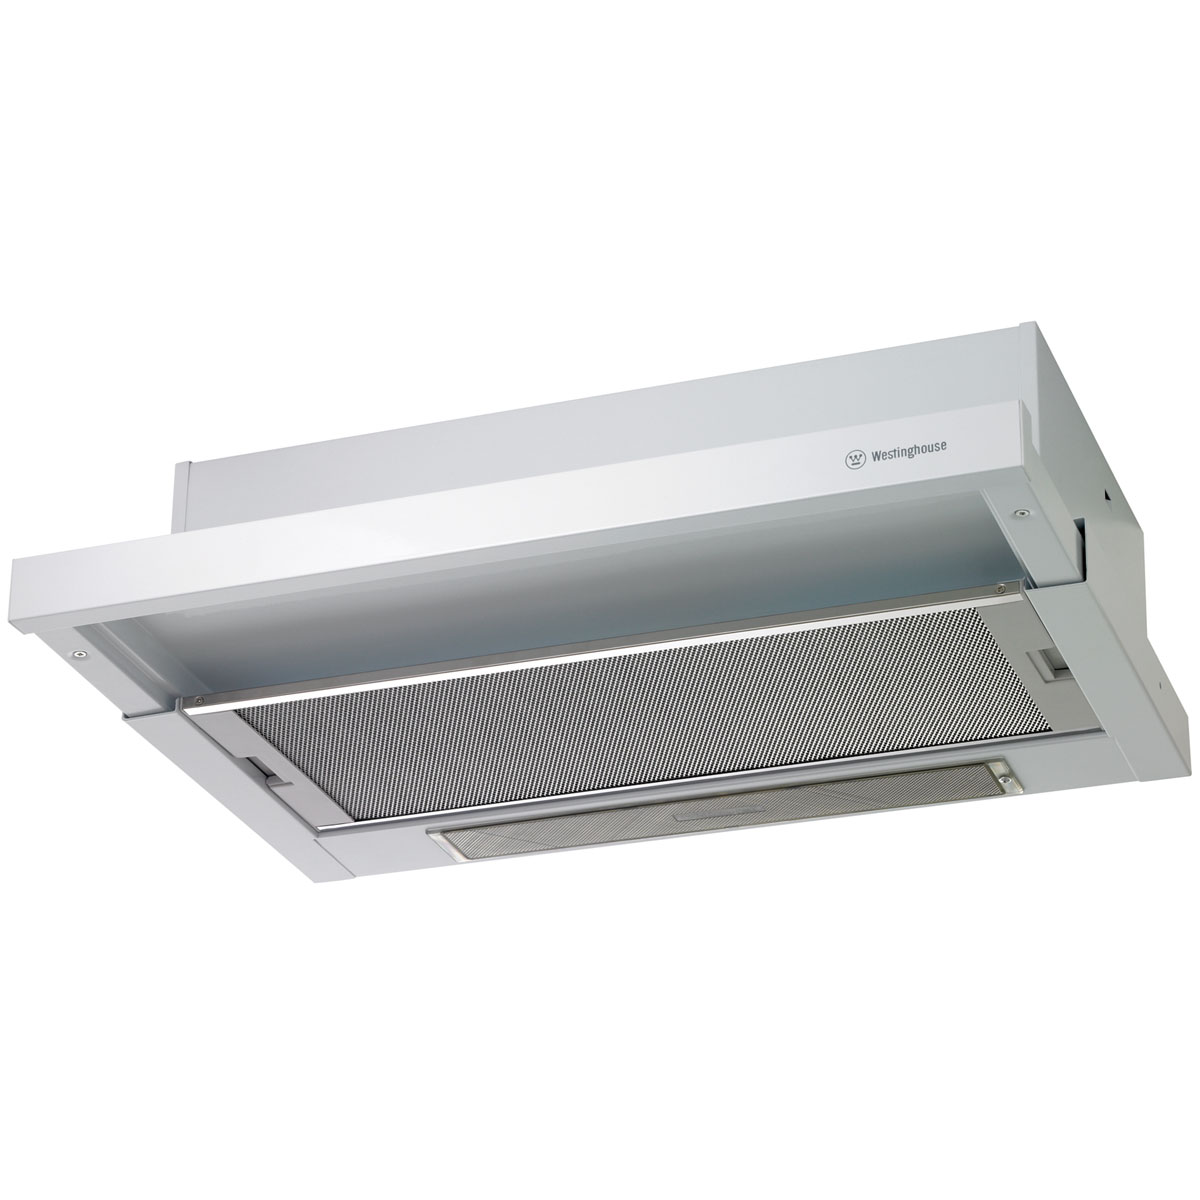 Westinghouse Slide Out Rangehood WRH605IW